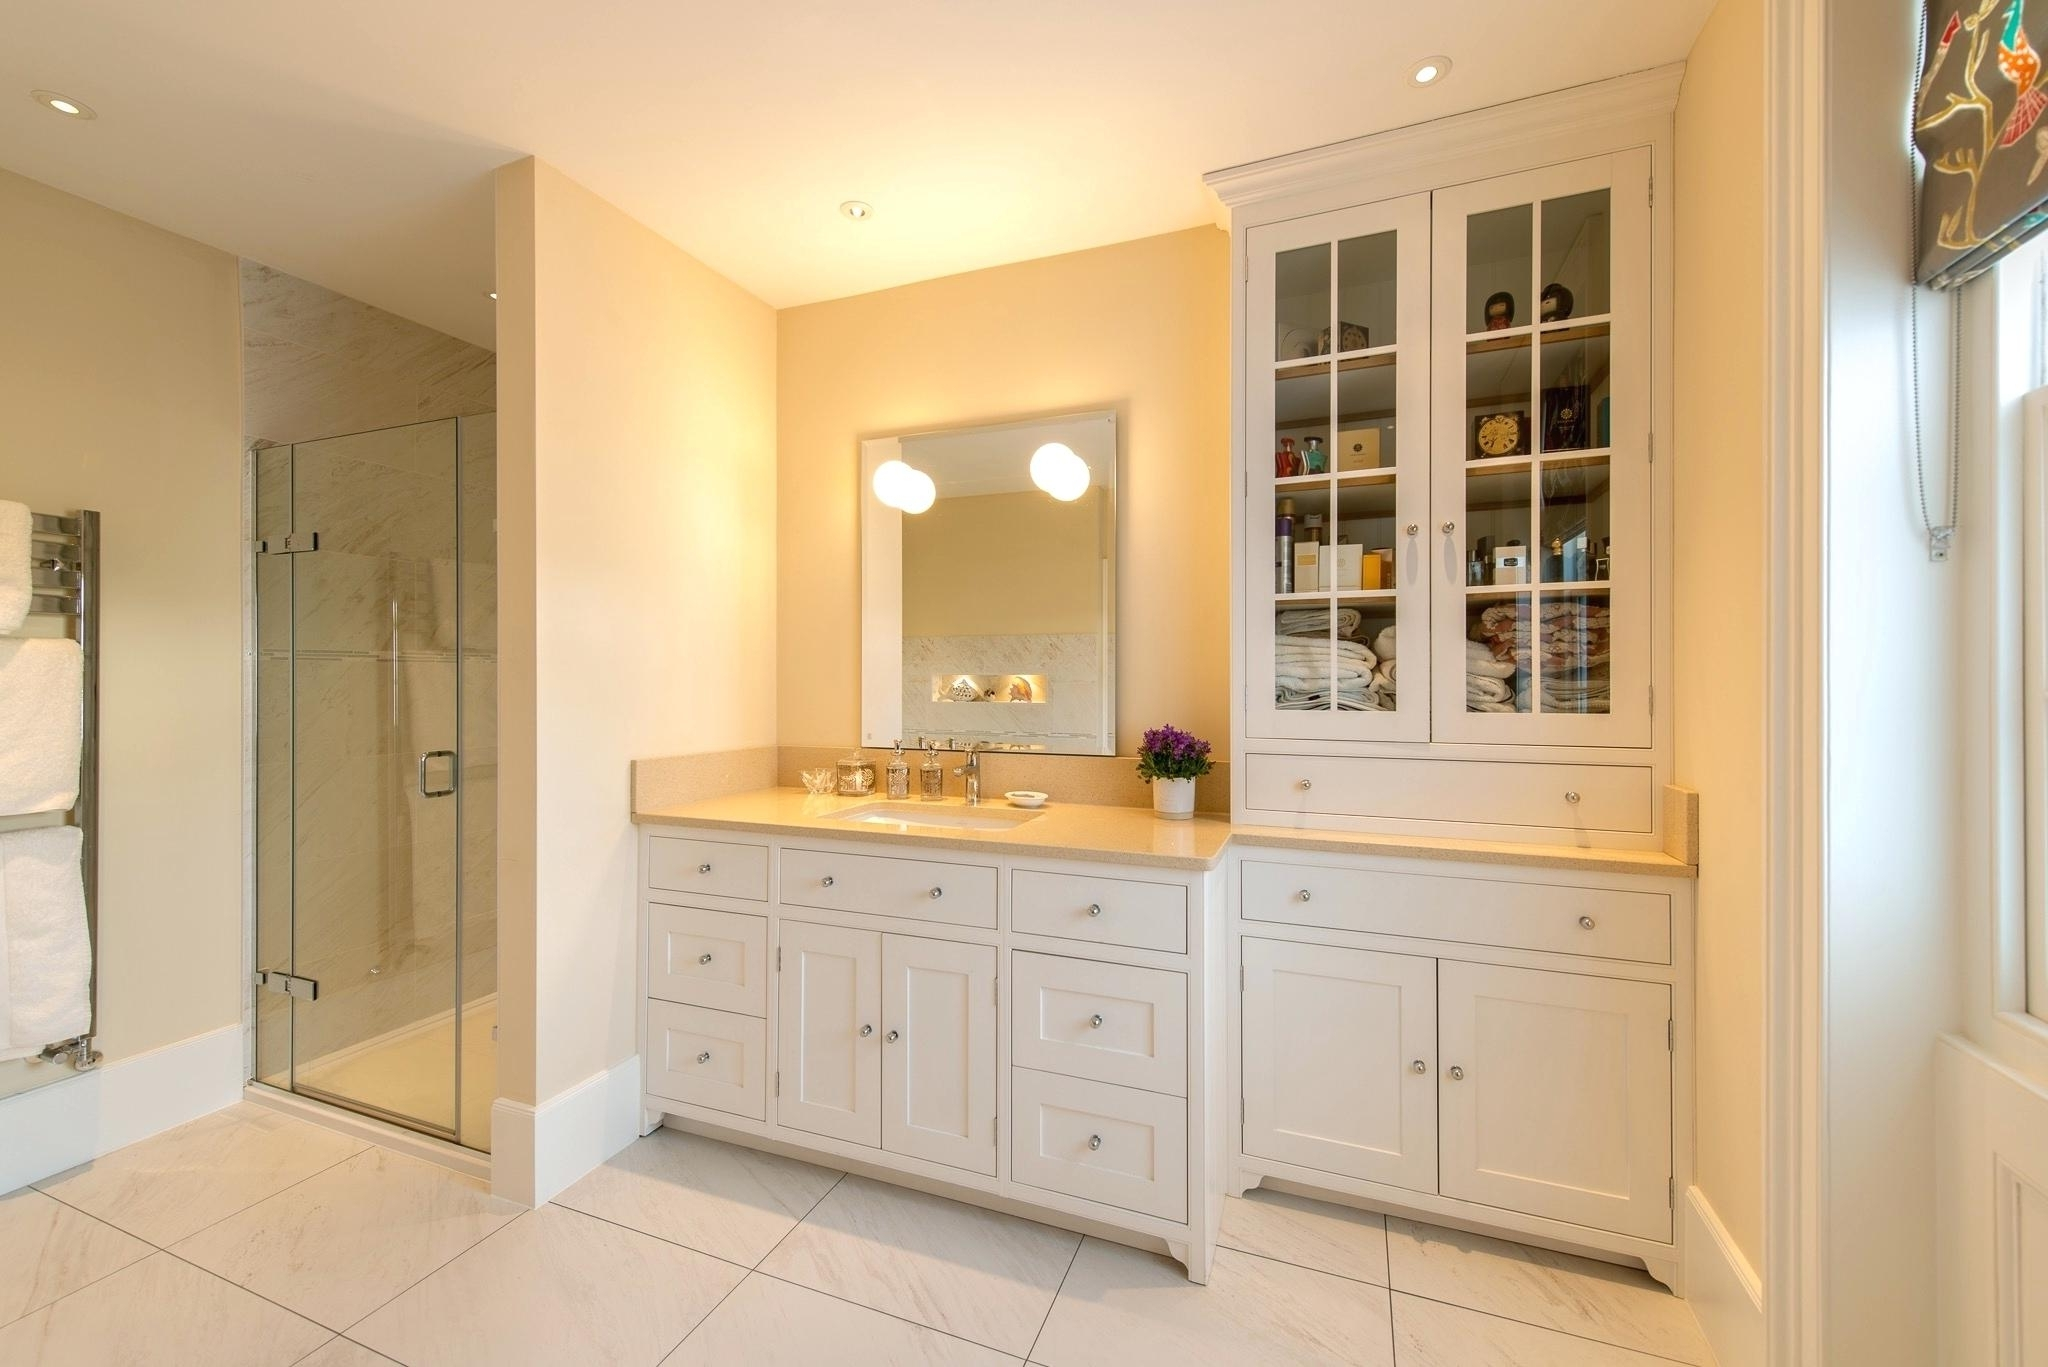 Made To Measure Cabinets Throughout Most Recent Bespoke Bathroom Cabinets Northern Ireland Made To Measure (View 4 of 15)